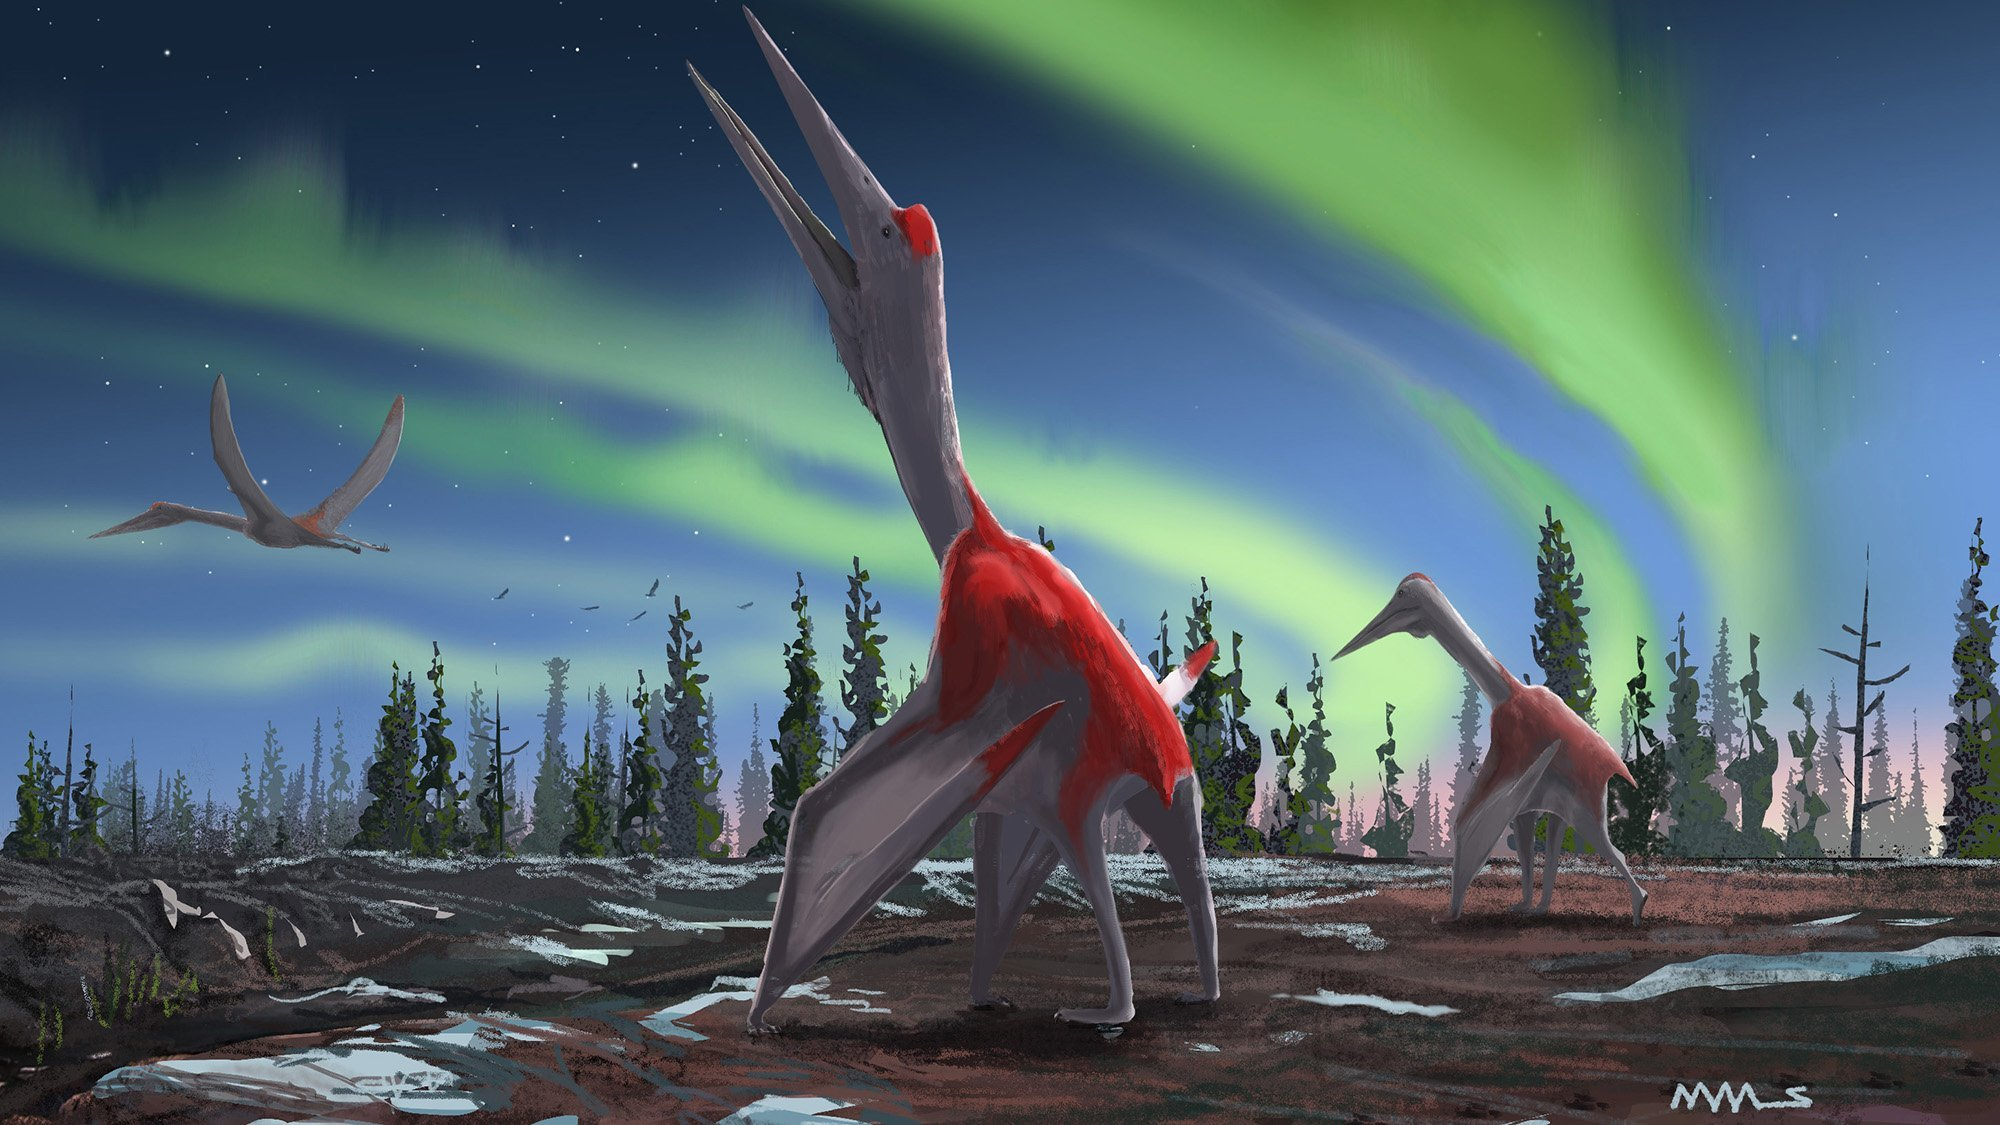 'Frozen dragon of the north wind' was one of the largest animals to ever fly